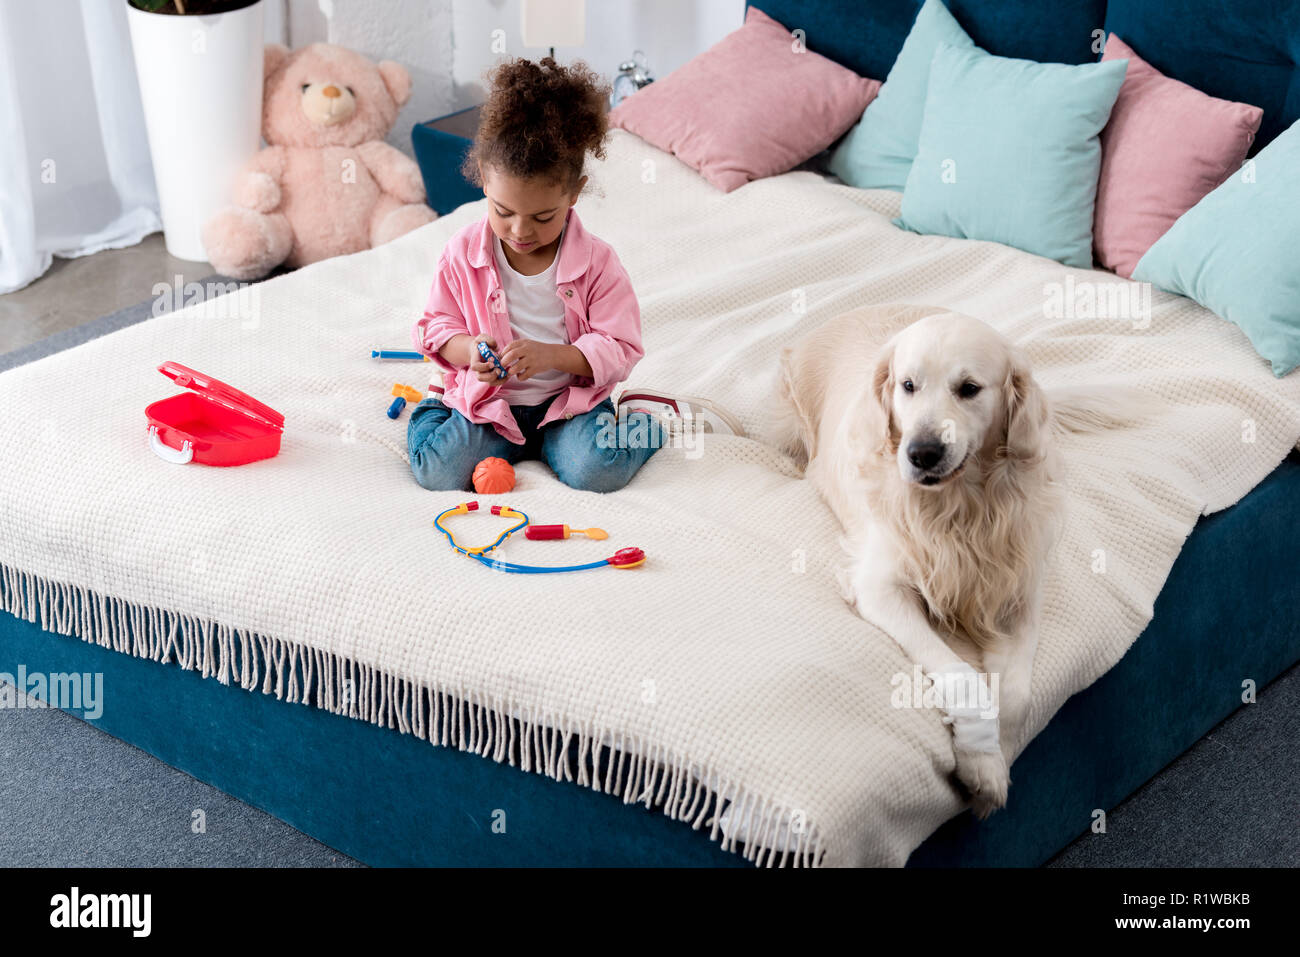 Cute african american child playing with toys on the bed with white dog lying beside - Stock Image